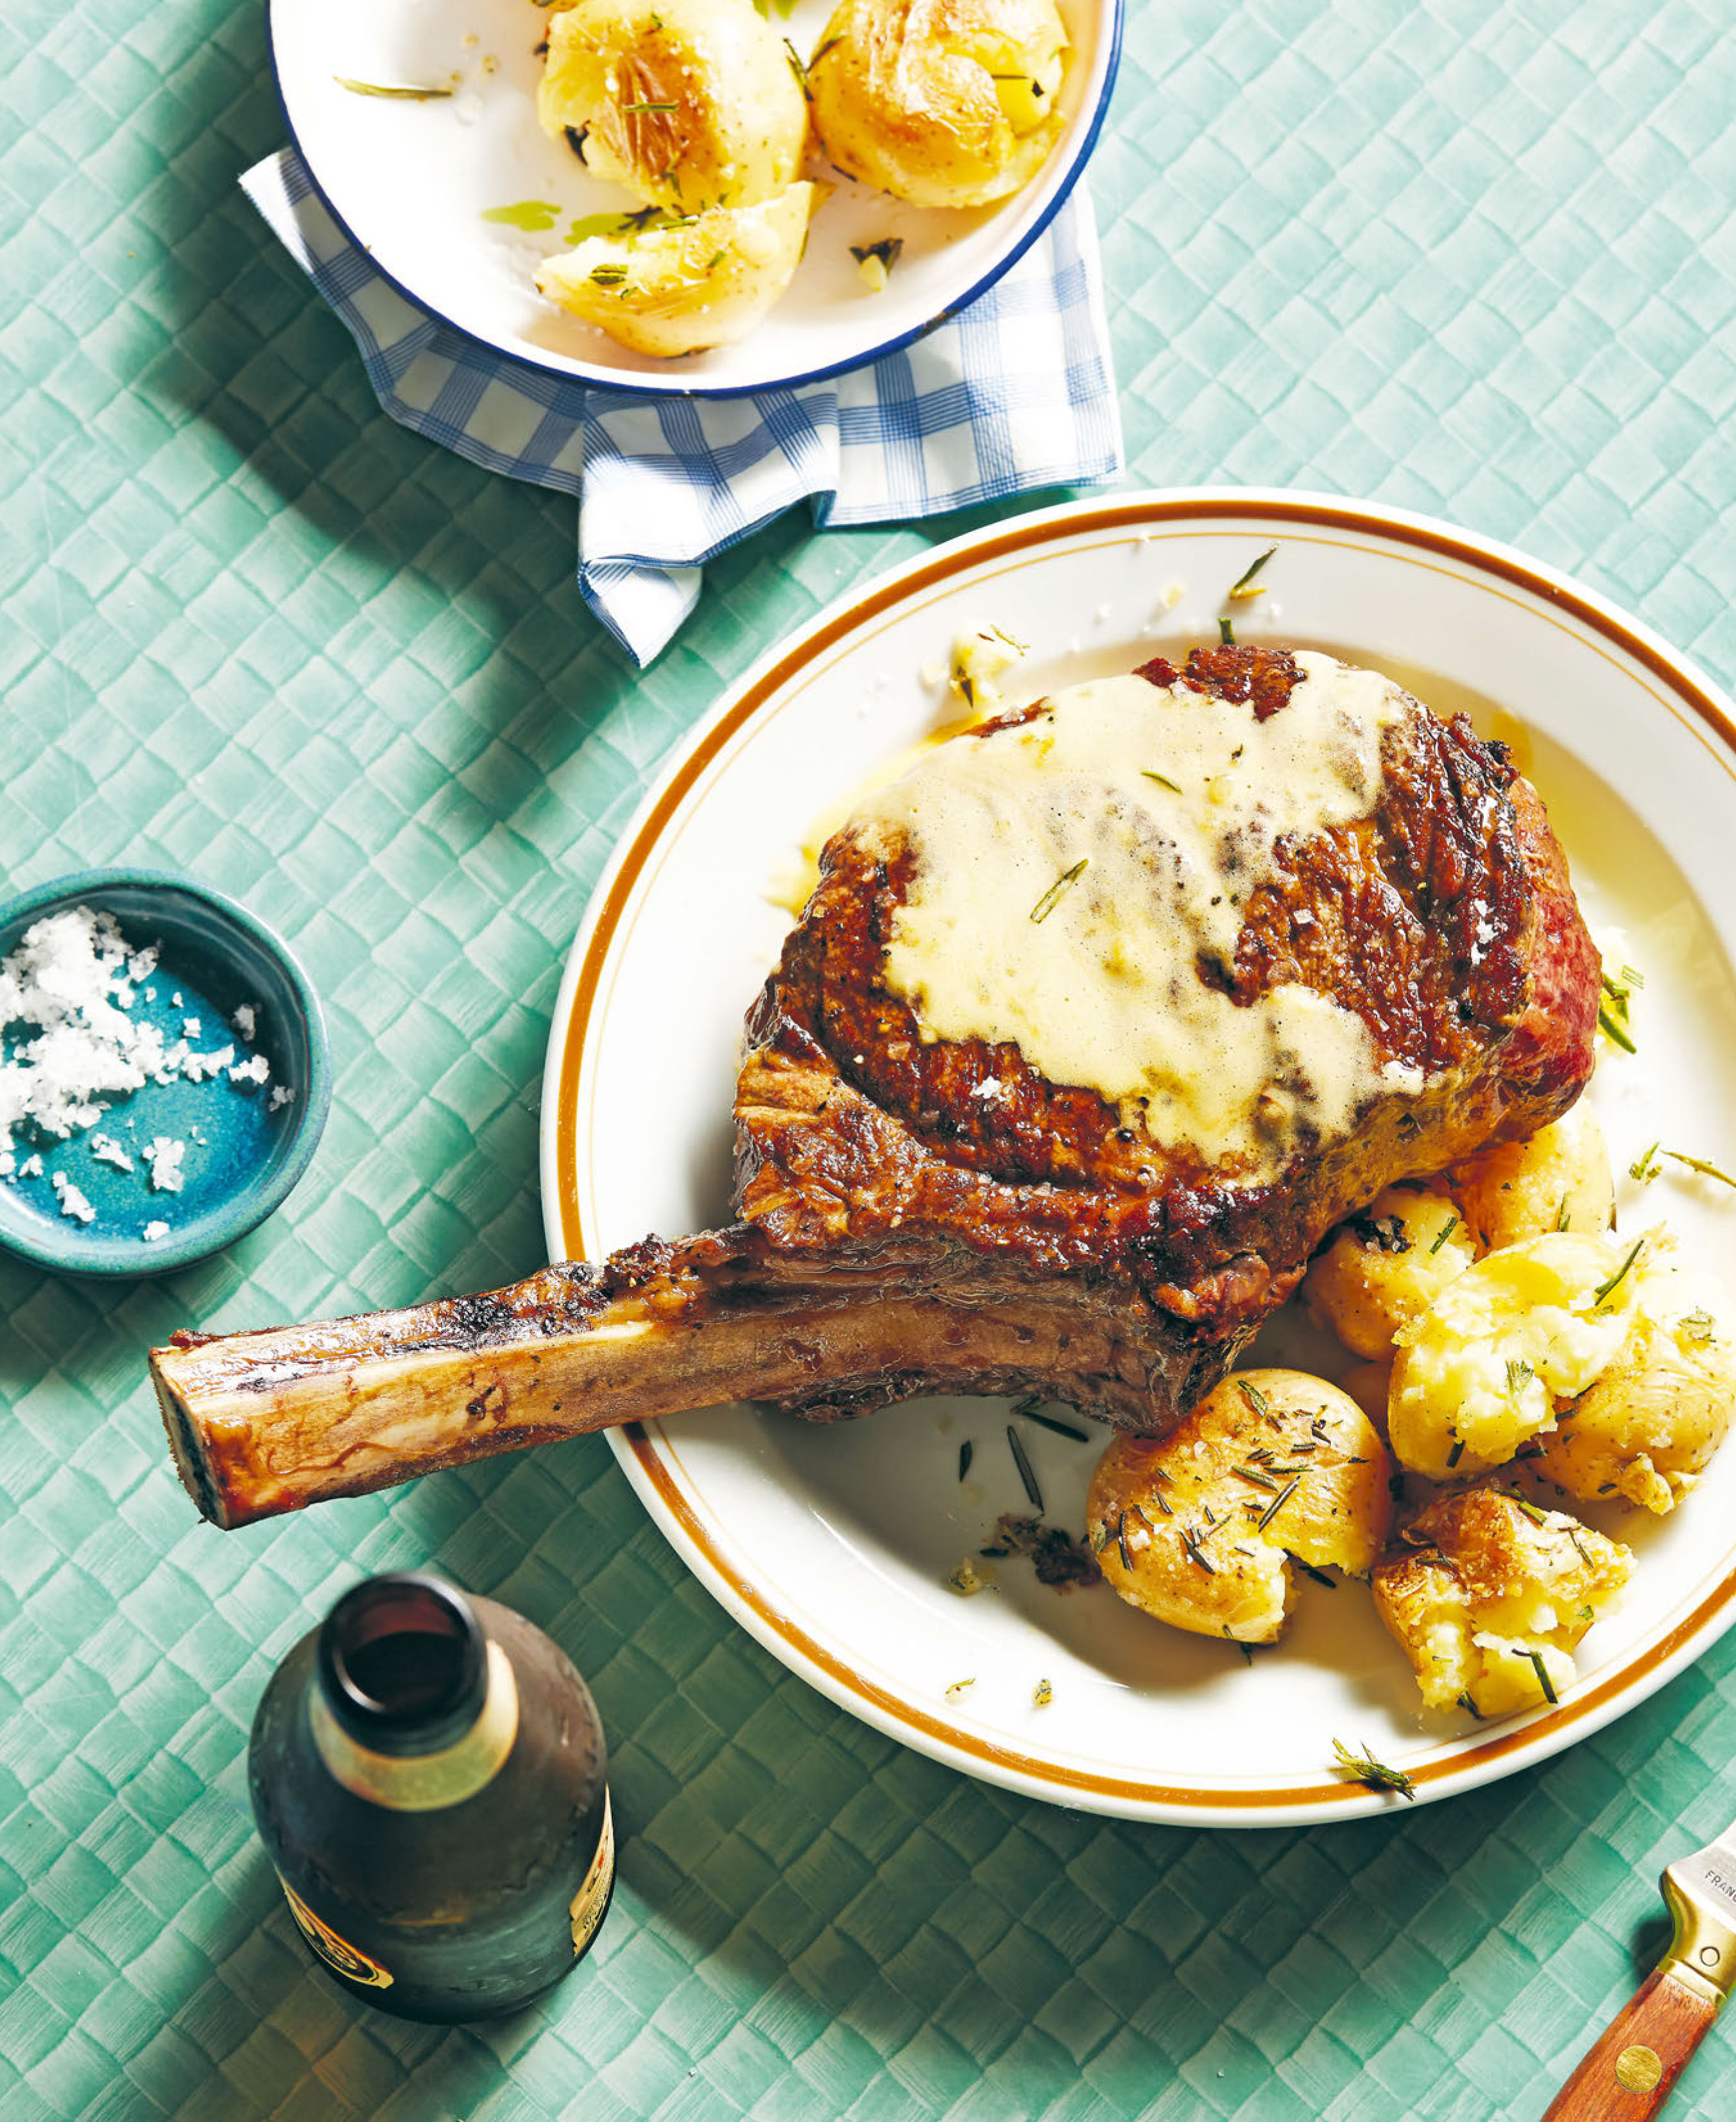 Steak, smashed potatoes and béarnaise